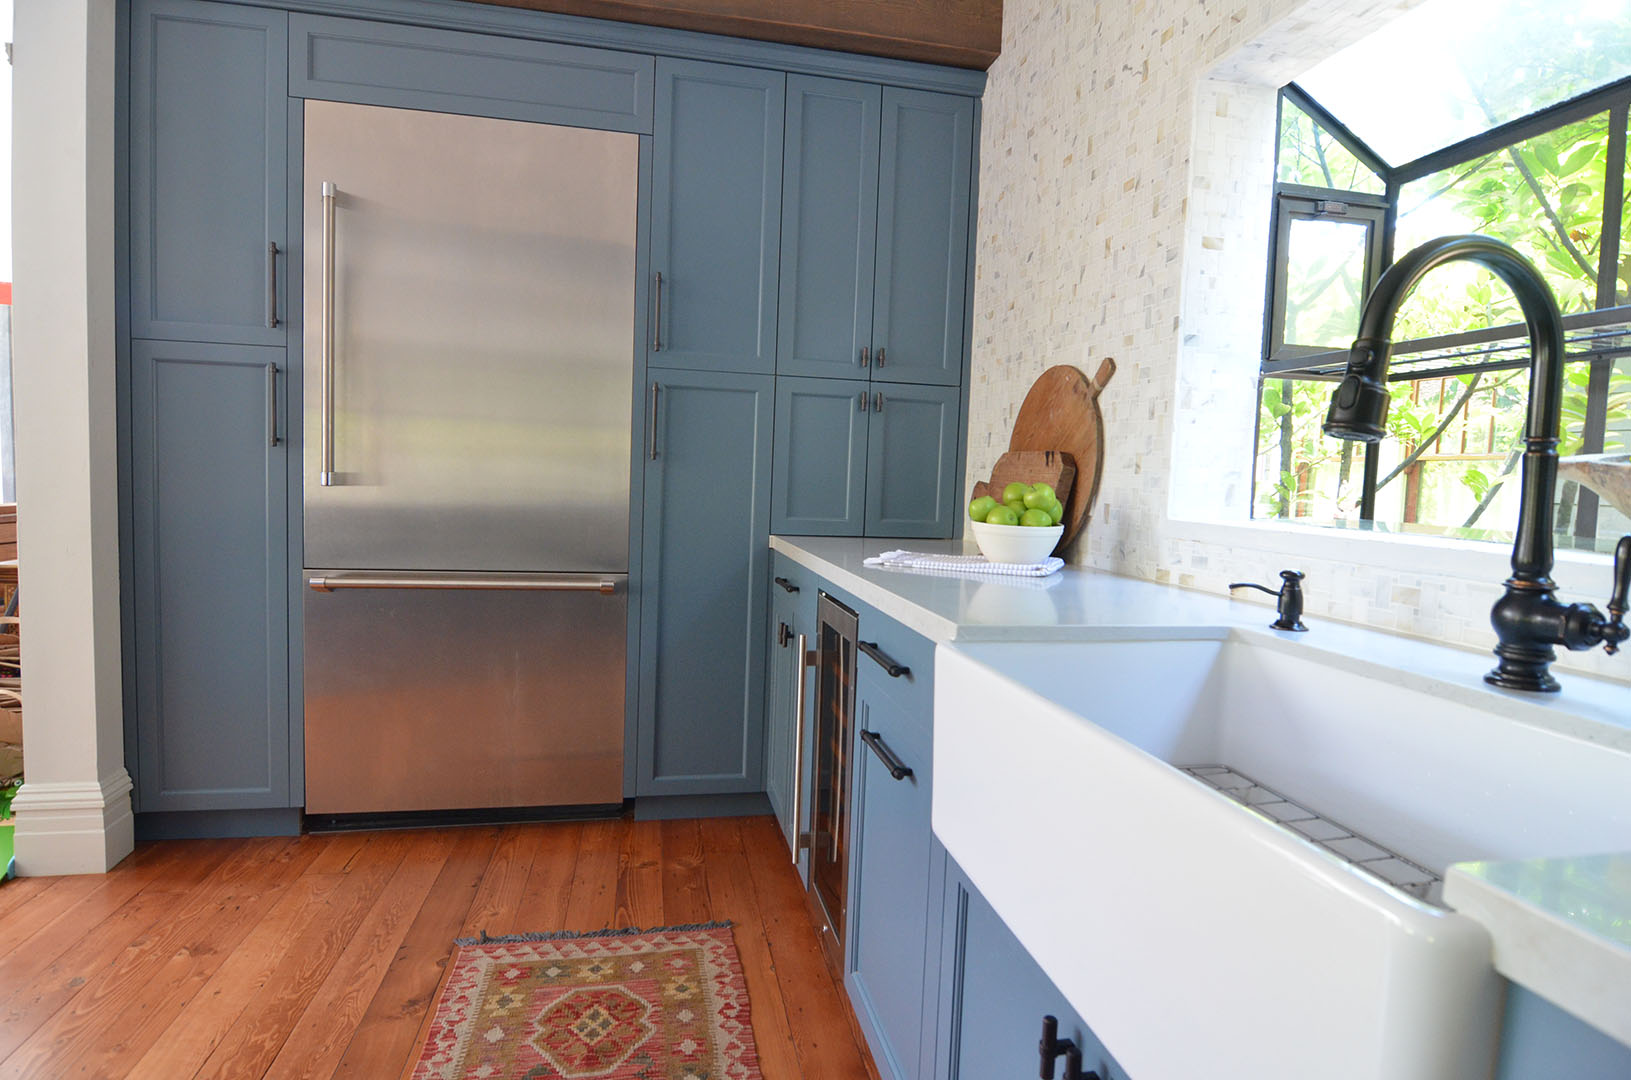 Kitchen cabinet design in North Berkeley